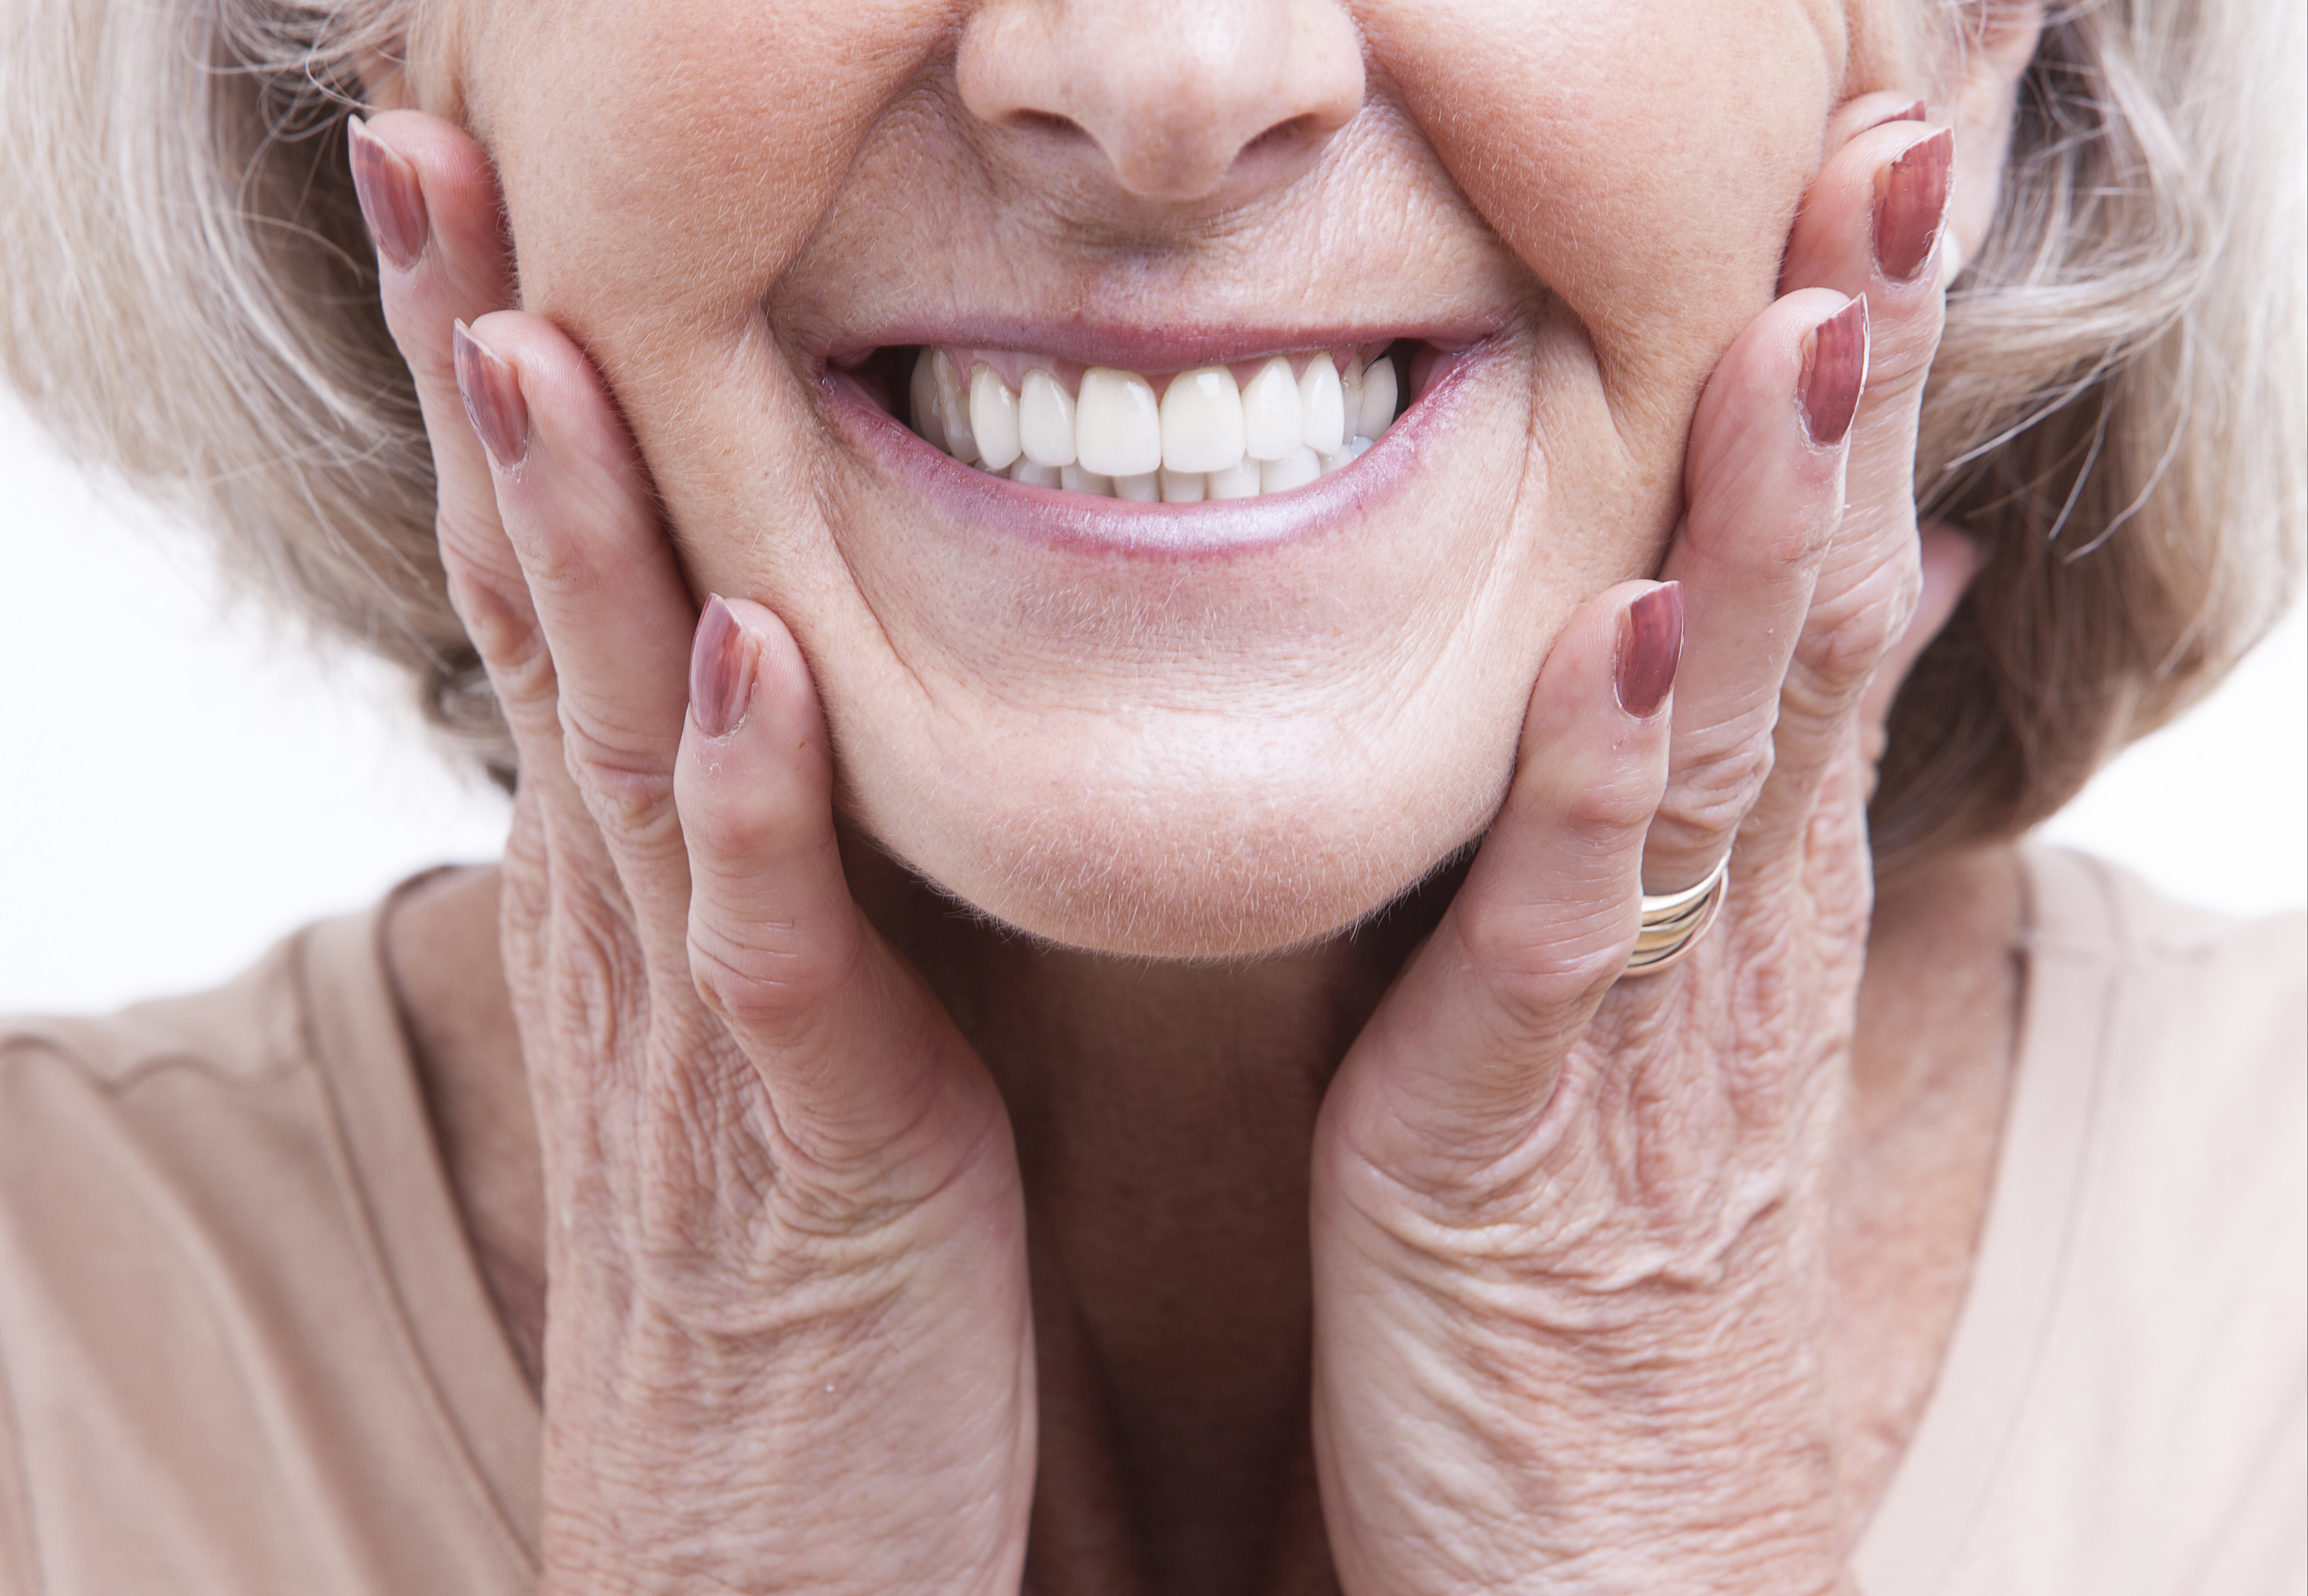 who offers the best dental implants coral springs?